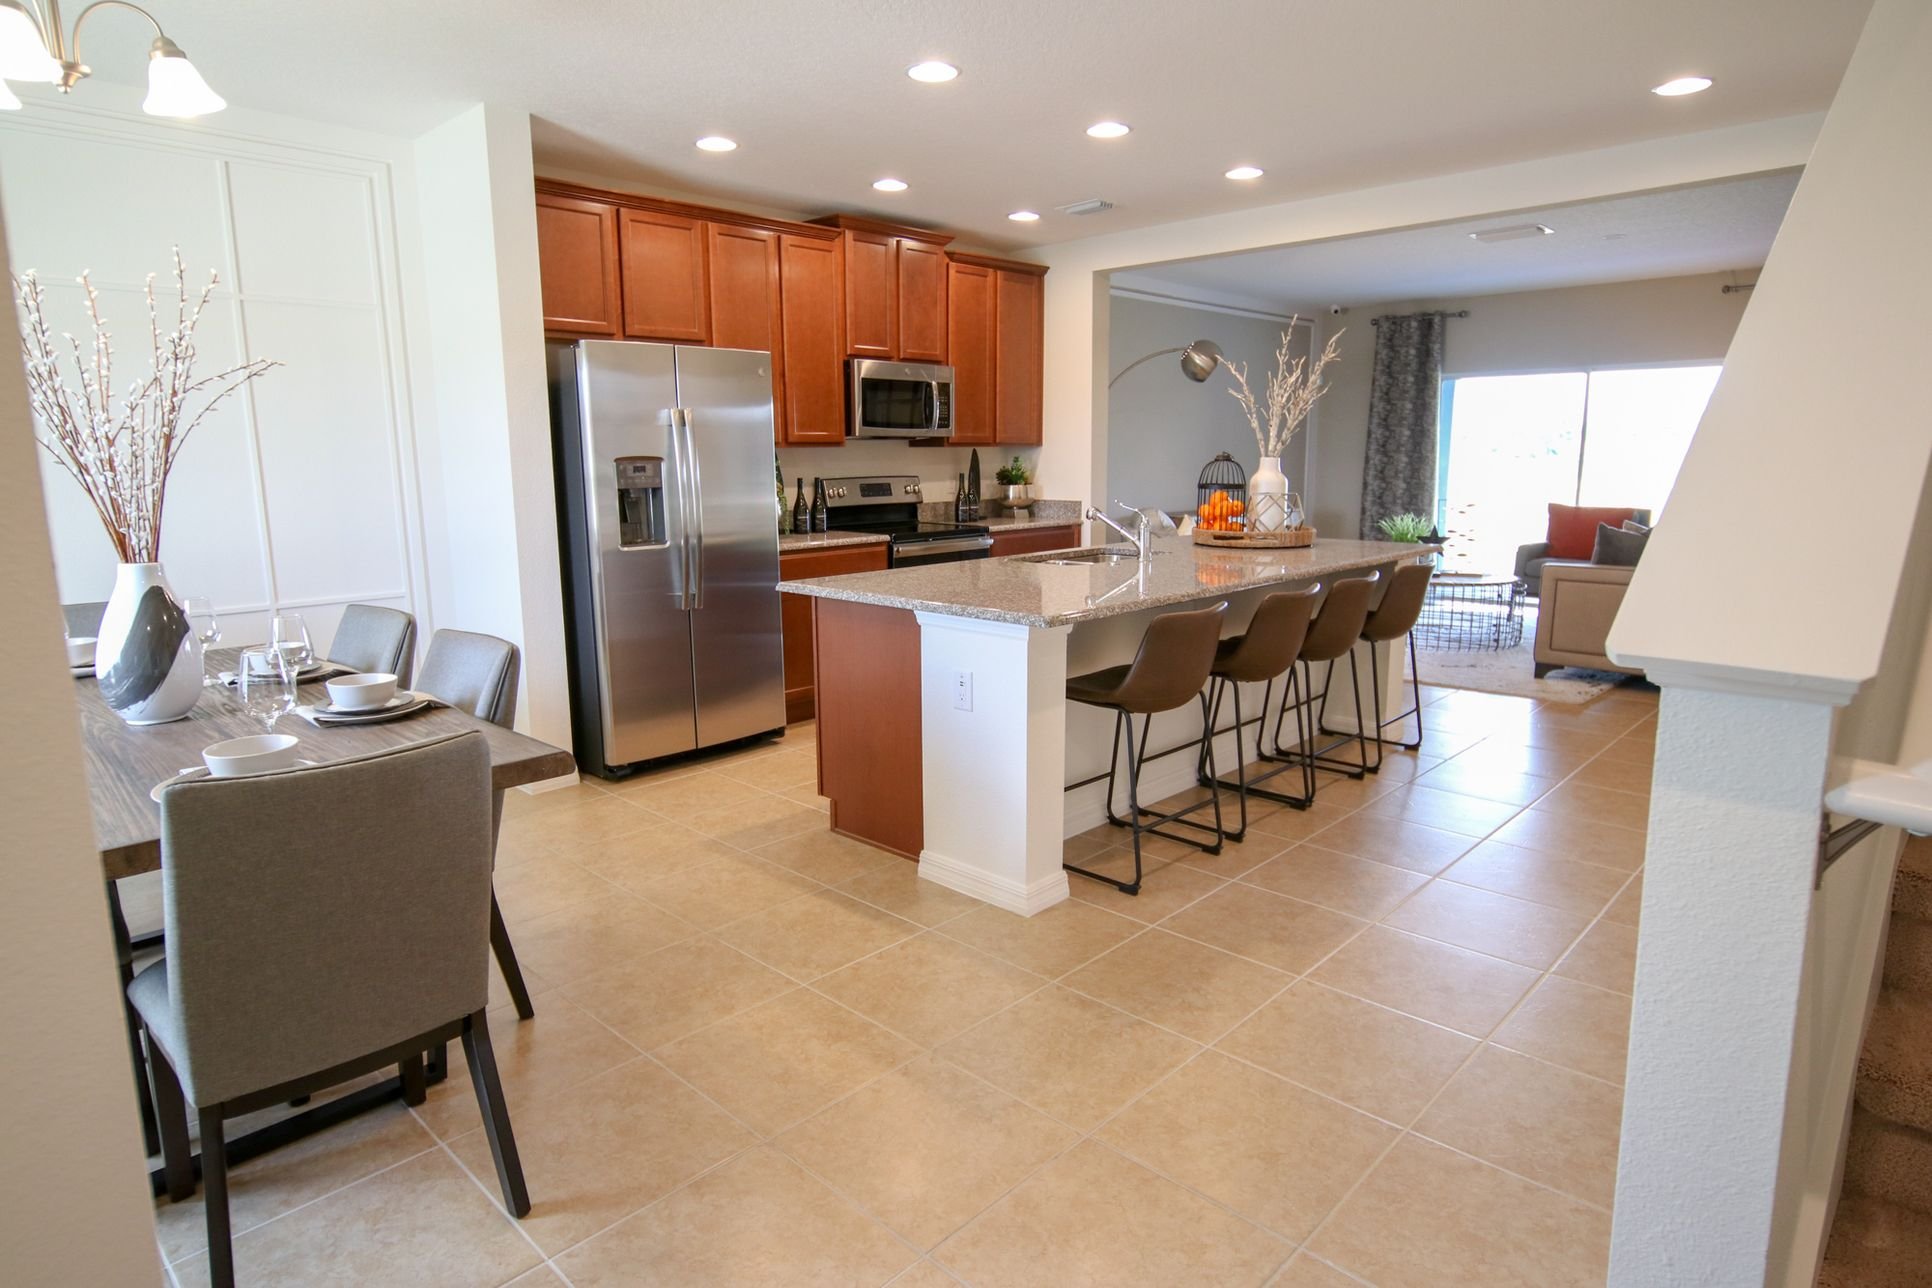 Entry into Home - Dining, Kitchen:Paige Townhome Floor Plan  |  Hanover Family Builders